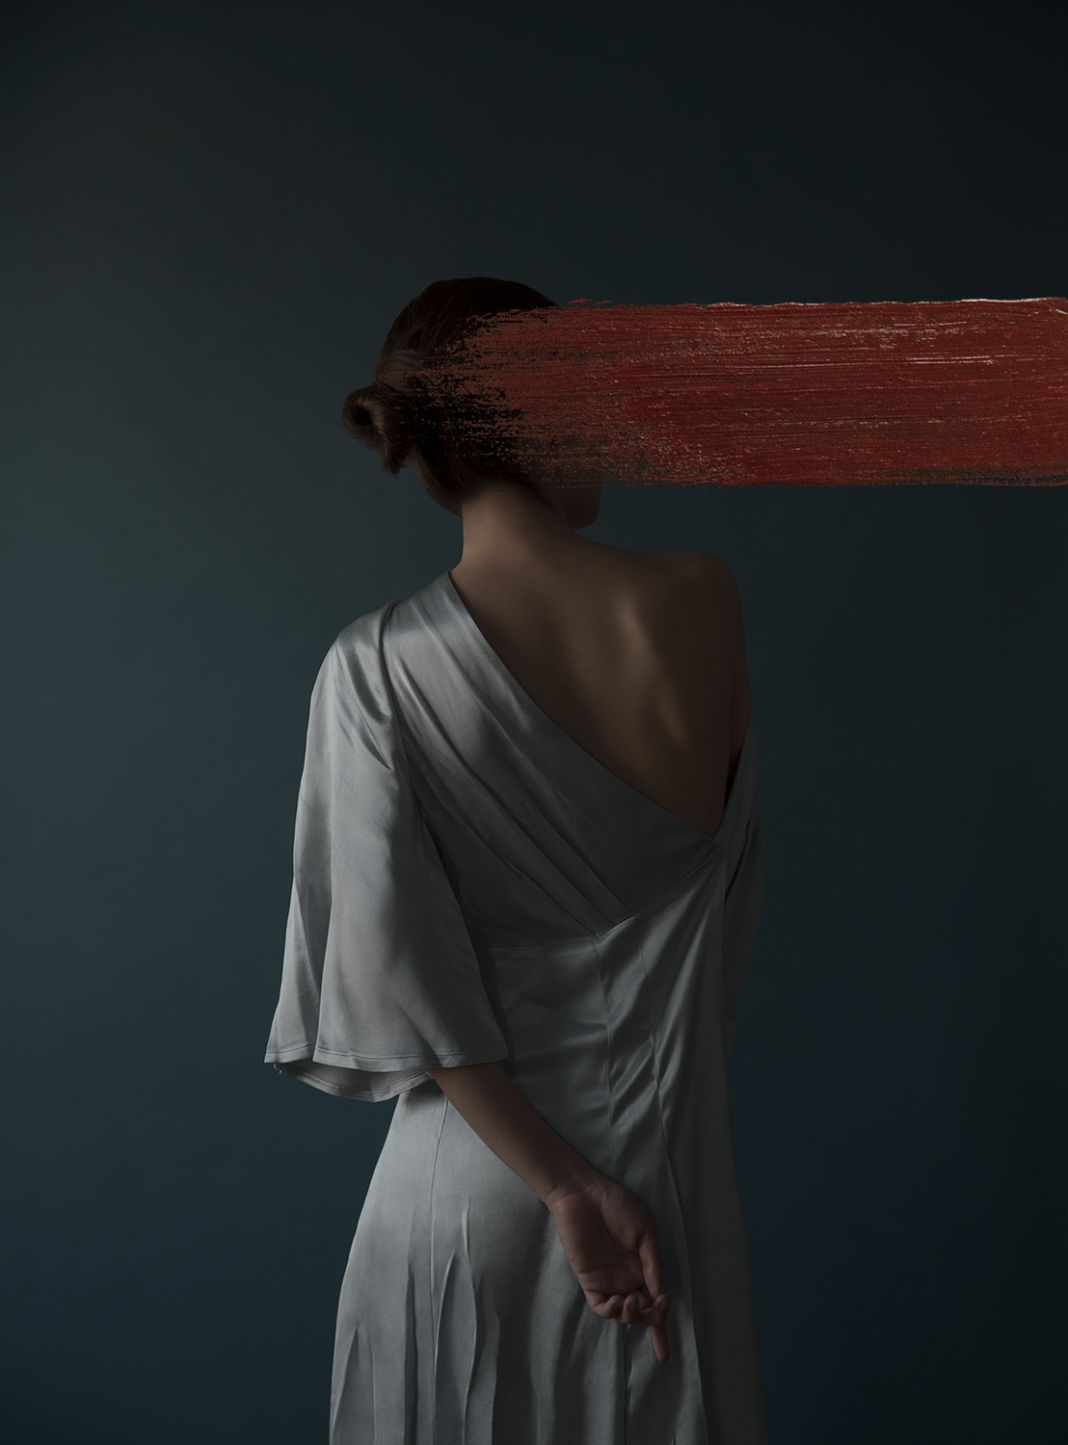 Contemporary Portrait photography by artist Andrea Torres Balaguer